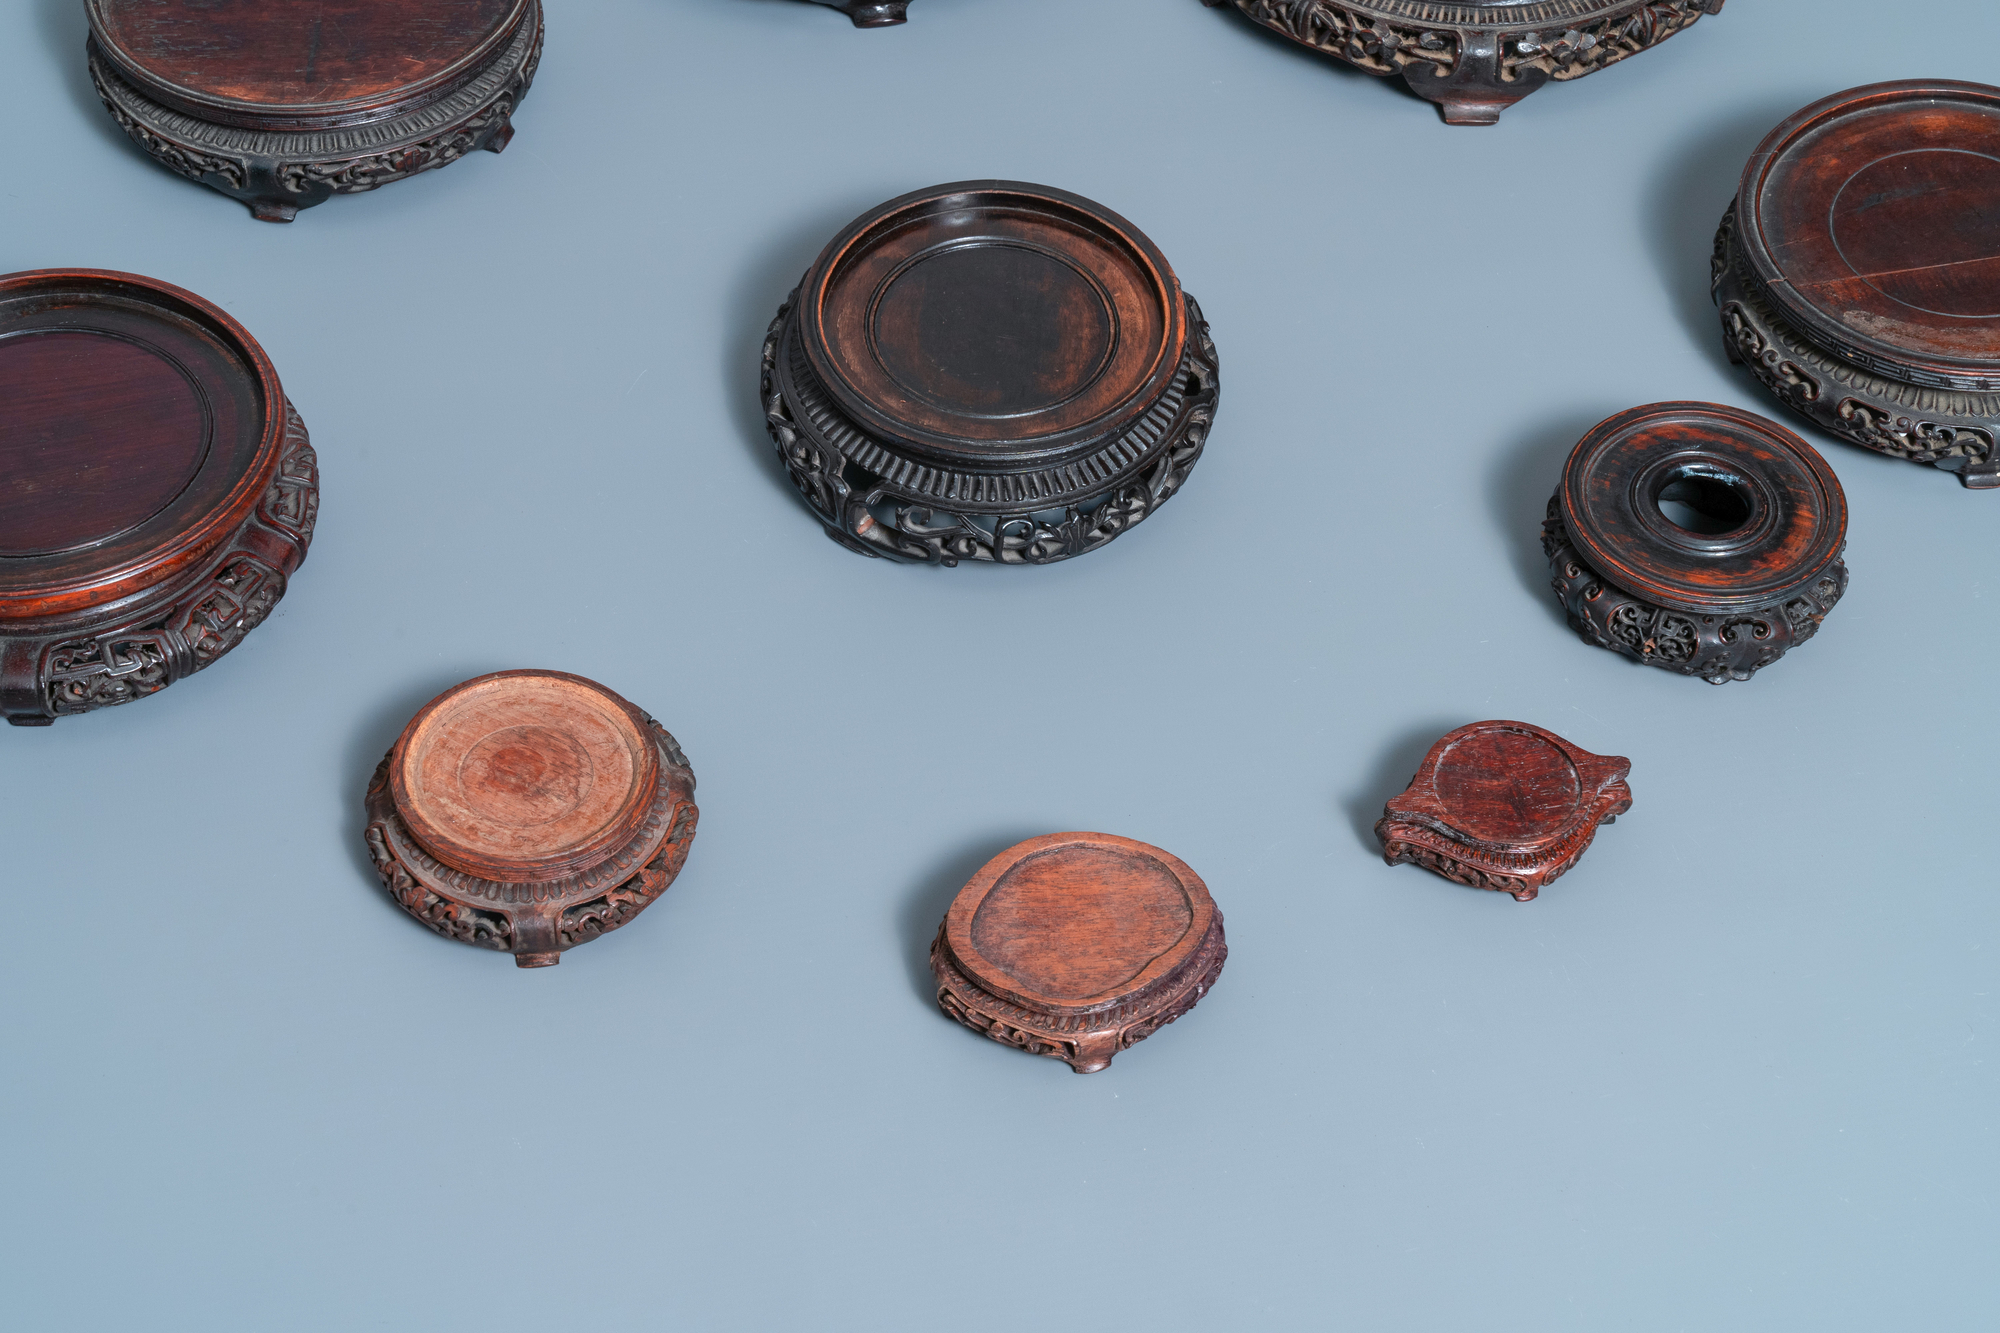 Ten Chinese reticulated carved wooden stands, 19/20th C. - Image 3 of 4